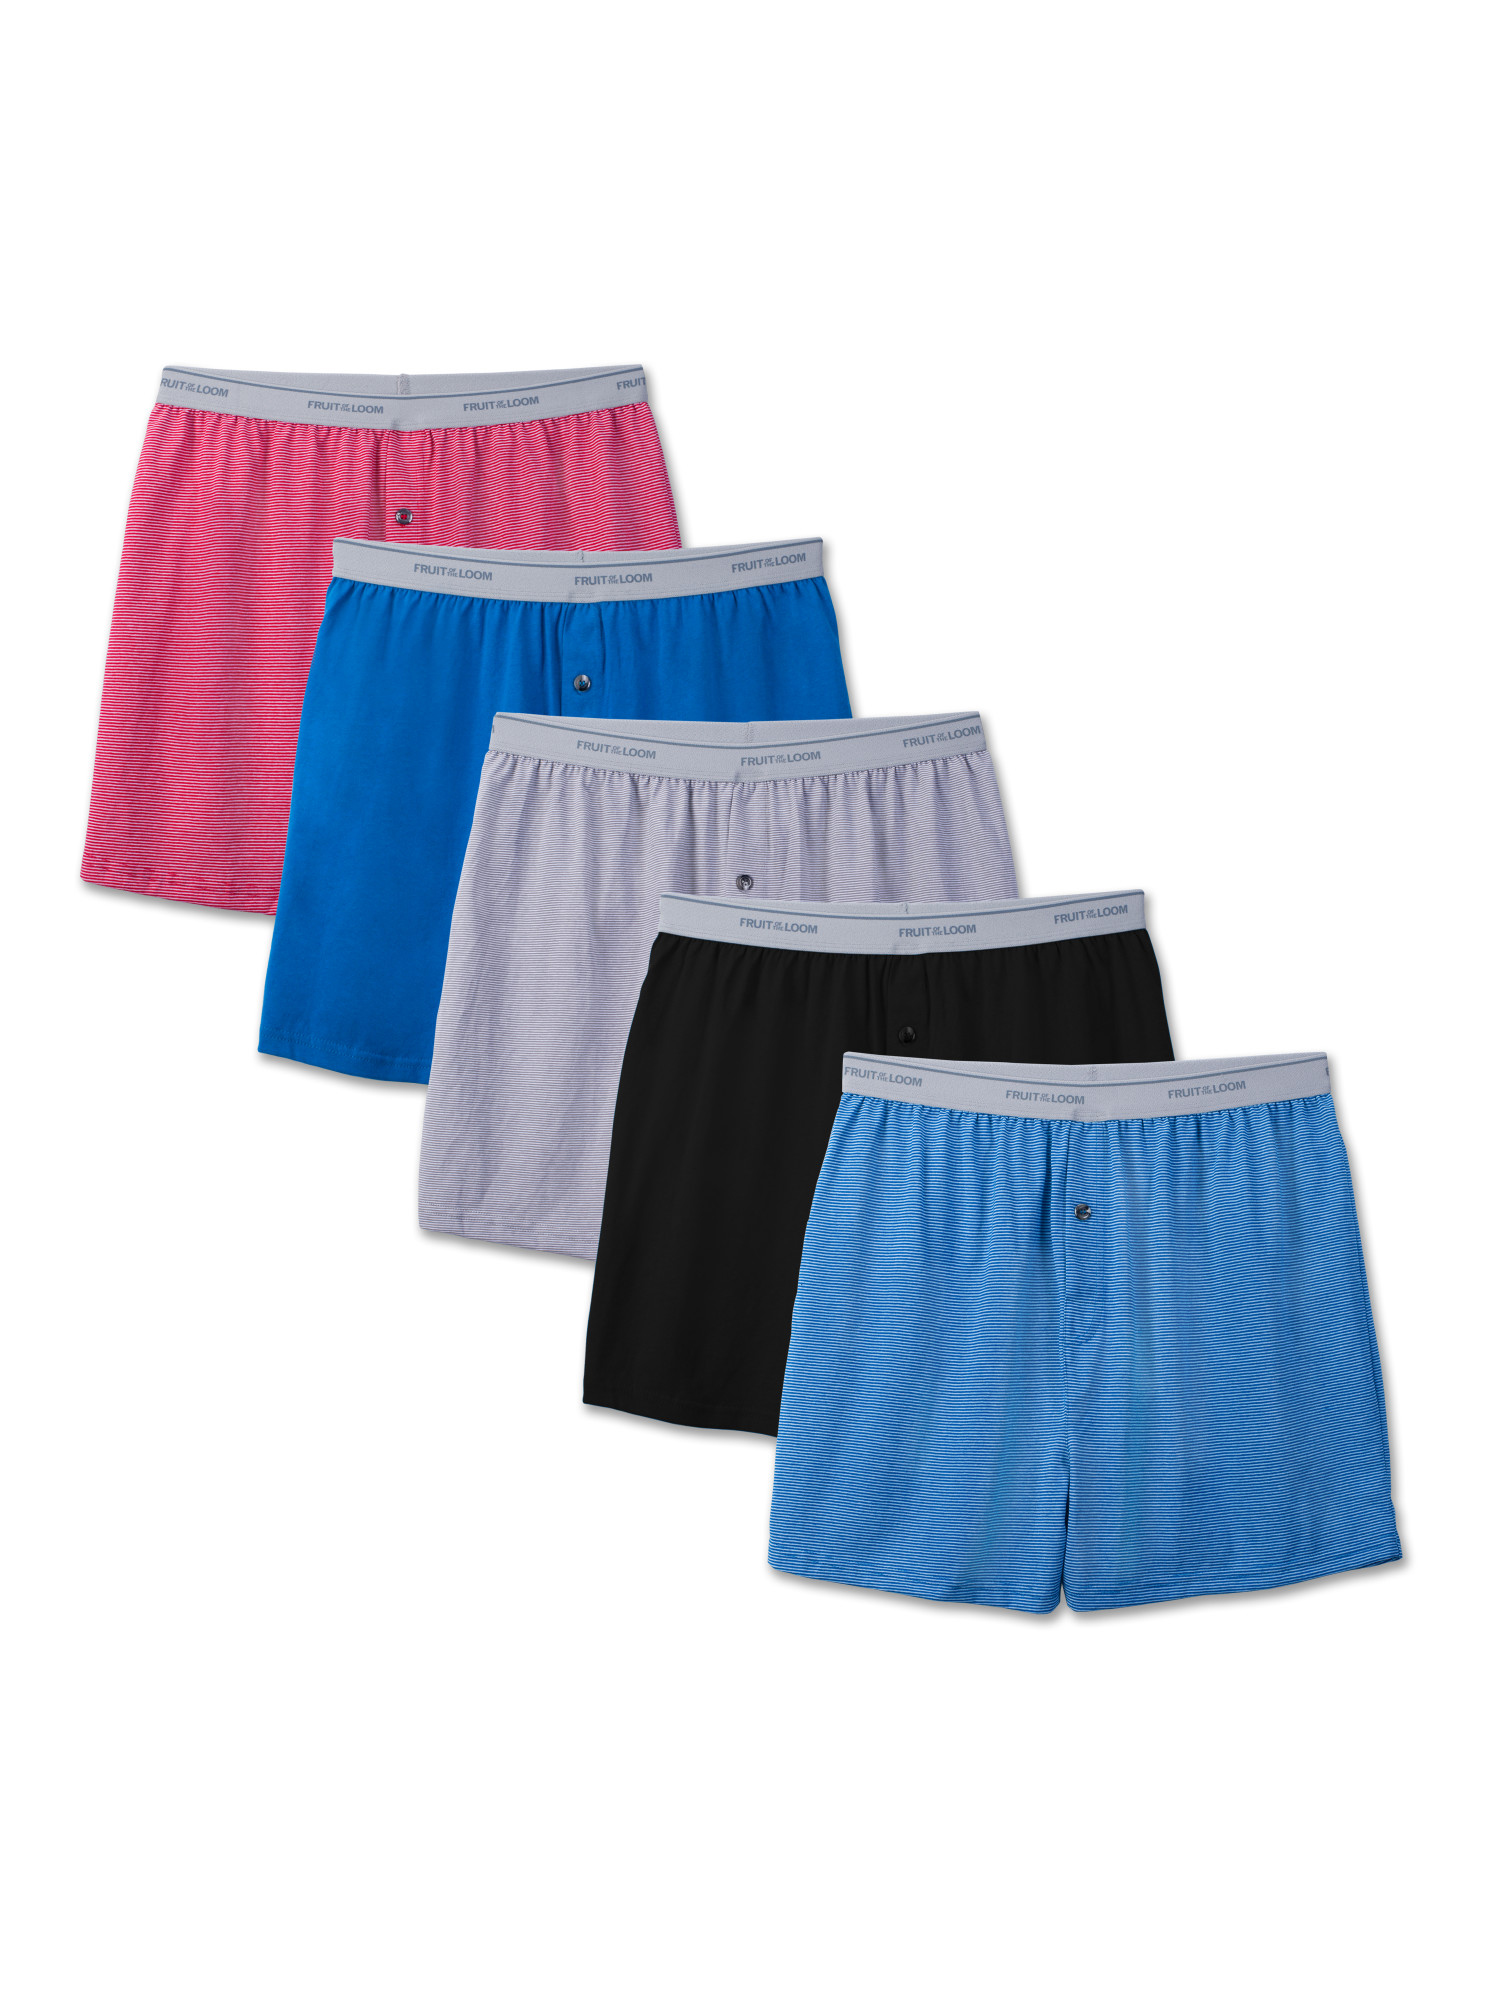 Men's Dual Defense Exposed Waistband Knit Boxers, 5 Pack